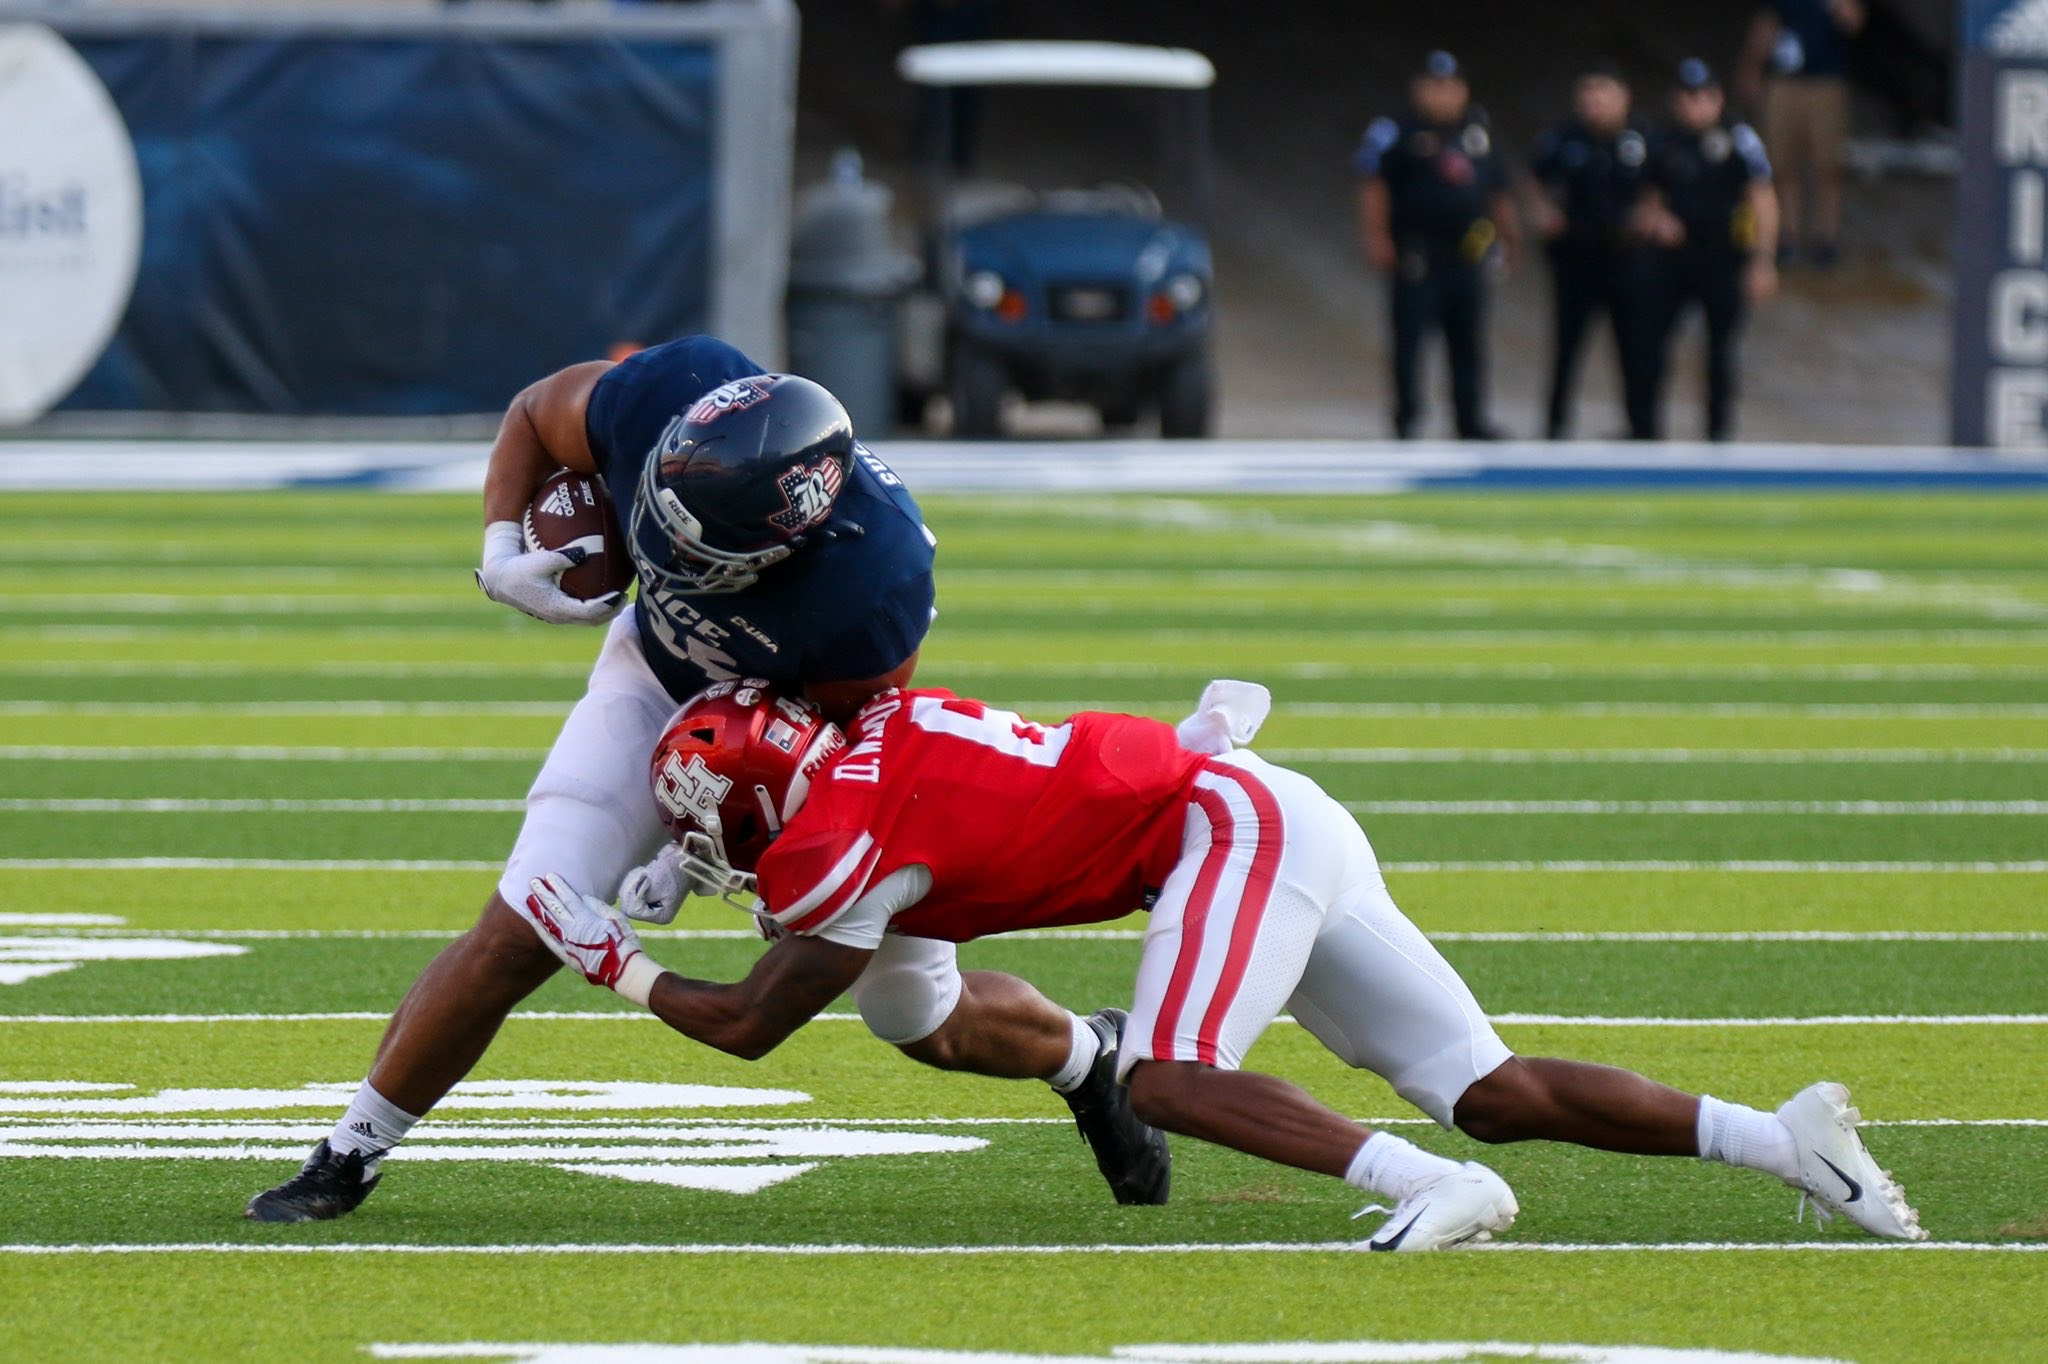 With Tune out, Dell, McCaskill help keep UH in rhythm against Grambling